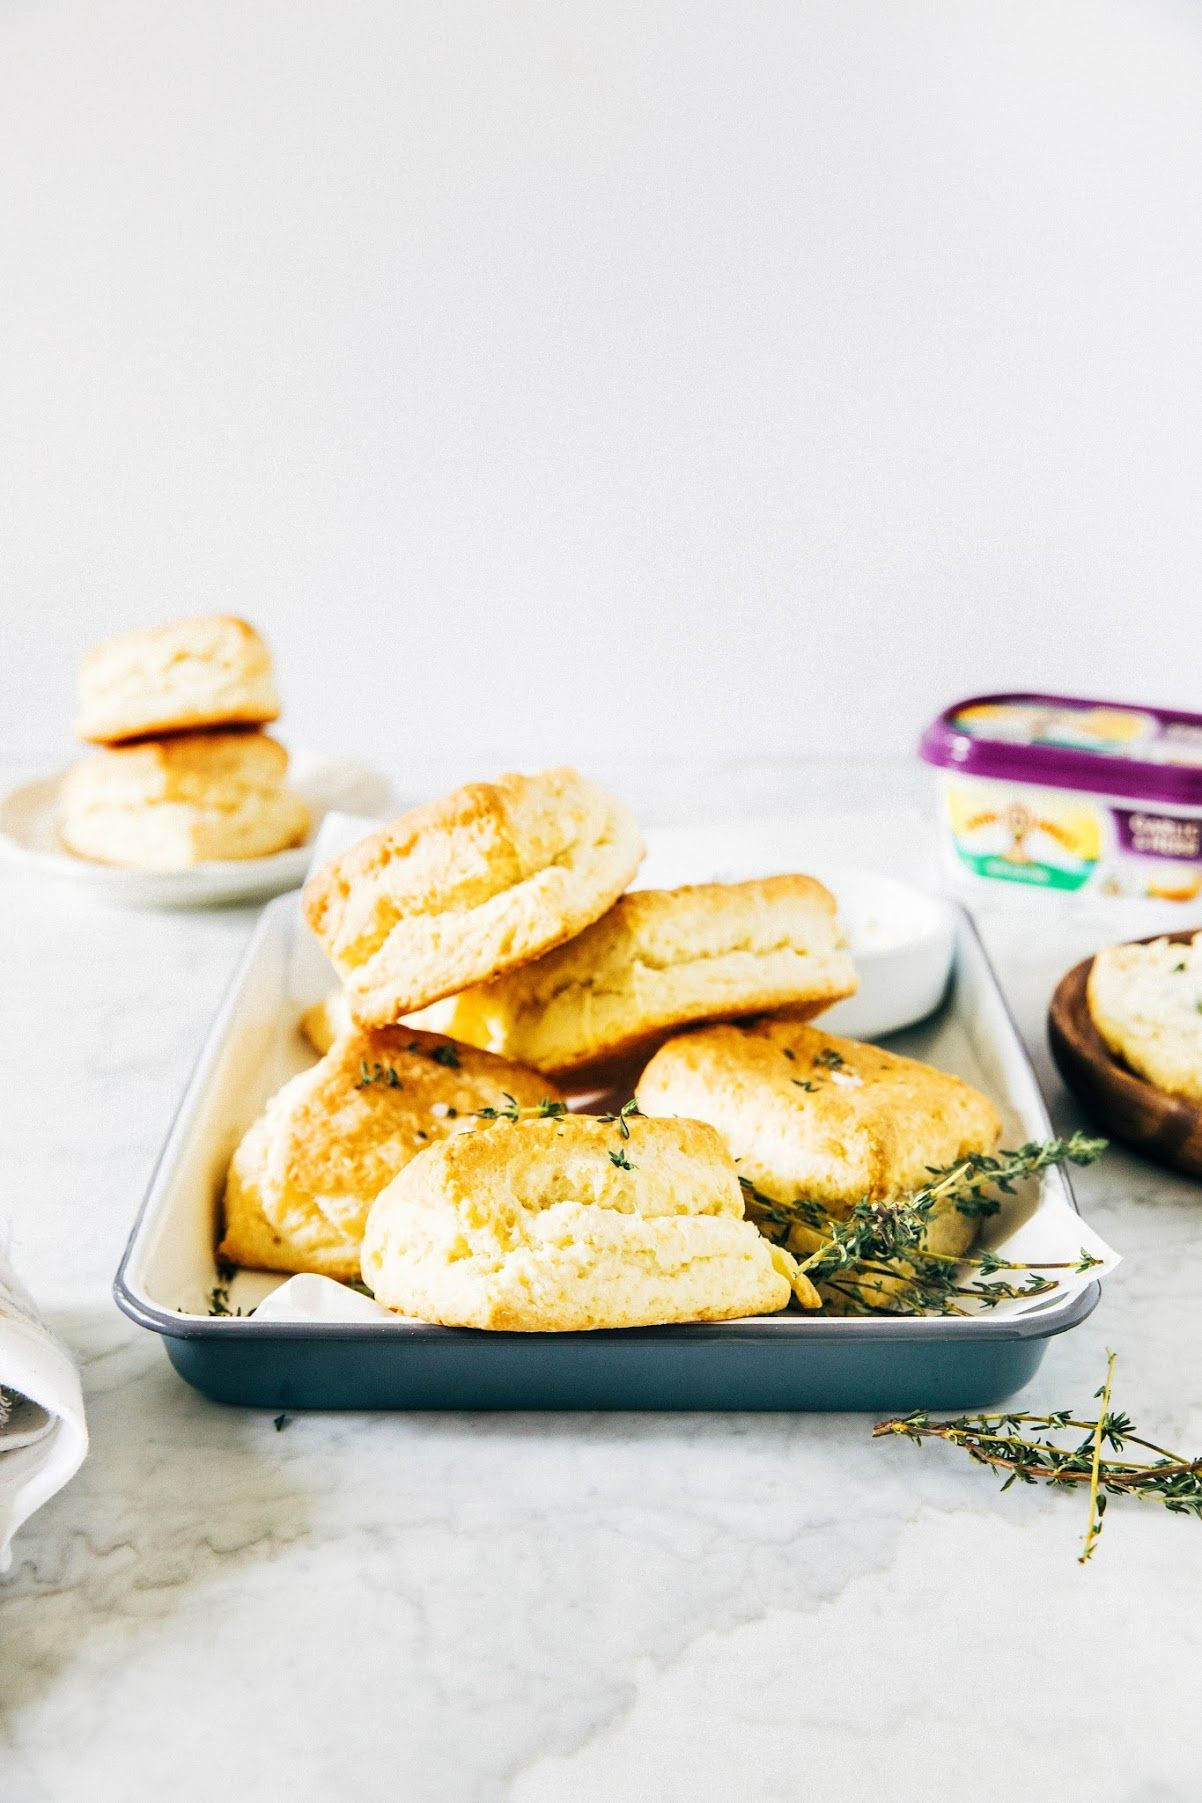 Garlic And Herb Buttermilk Biscuits Or How I Learned To Stop Worrying And Love The Biscuit Buttermilk Biscuits Biscuits Food